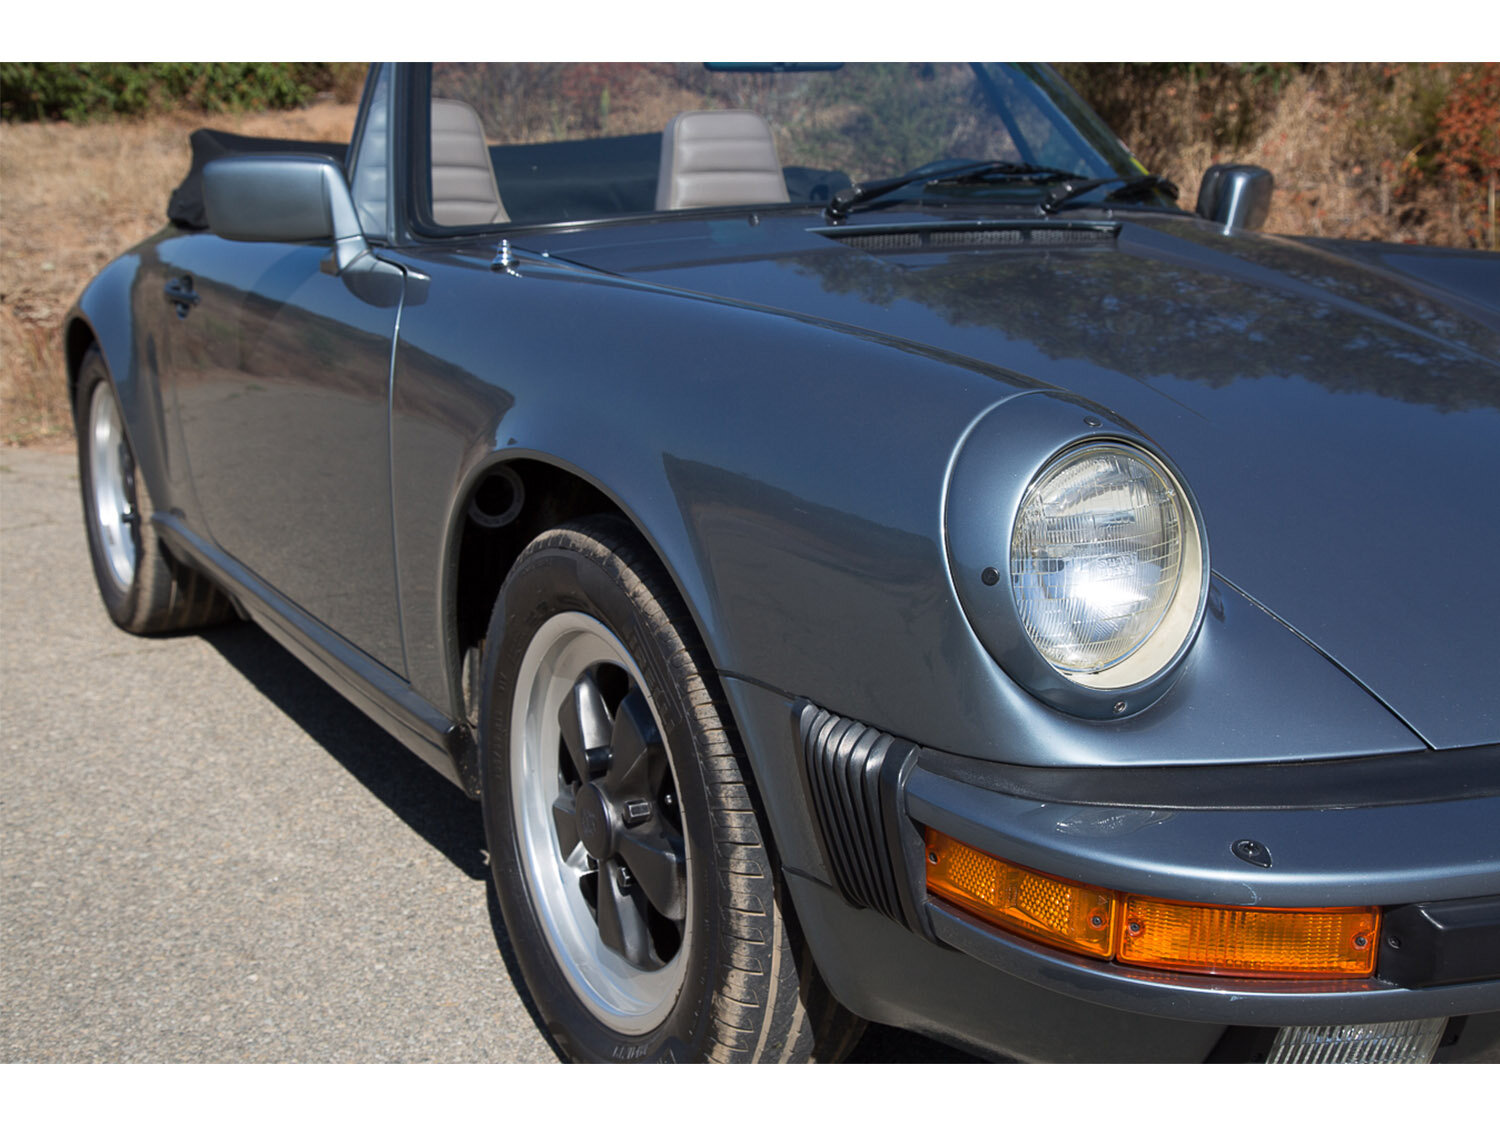 1984-carrera-cabriolet-slate-blue-911-sc-for-sale-makellos-classics_0001s_0000s_0003_1B7A6646.jpg